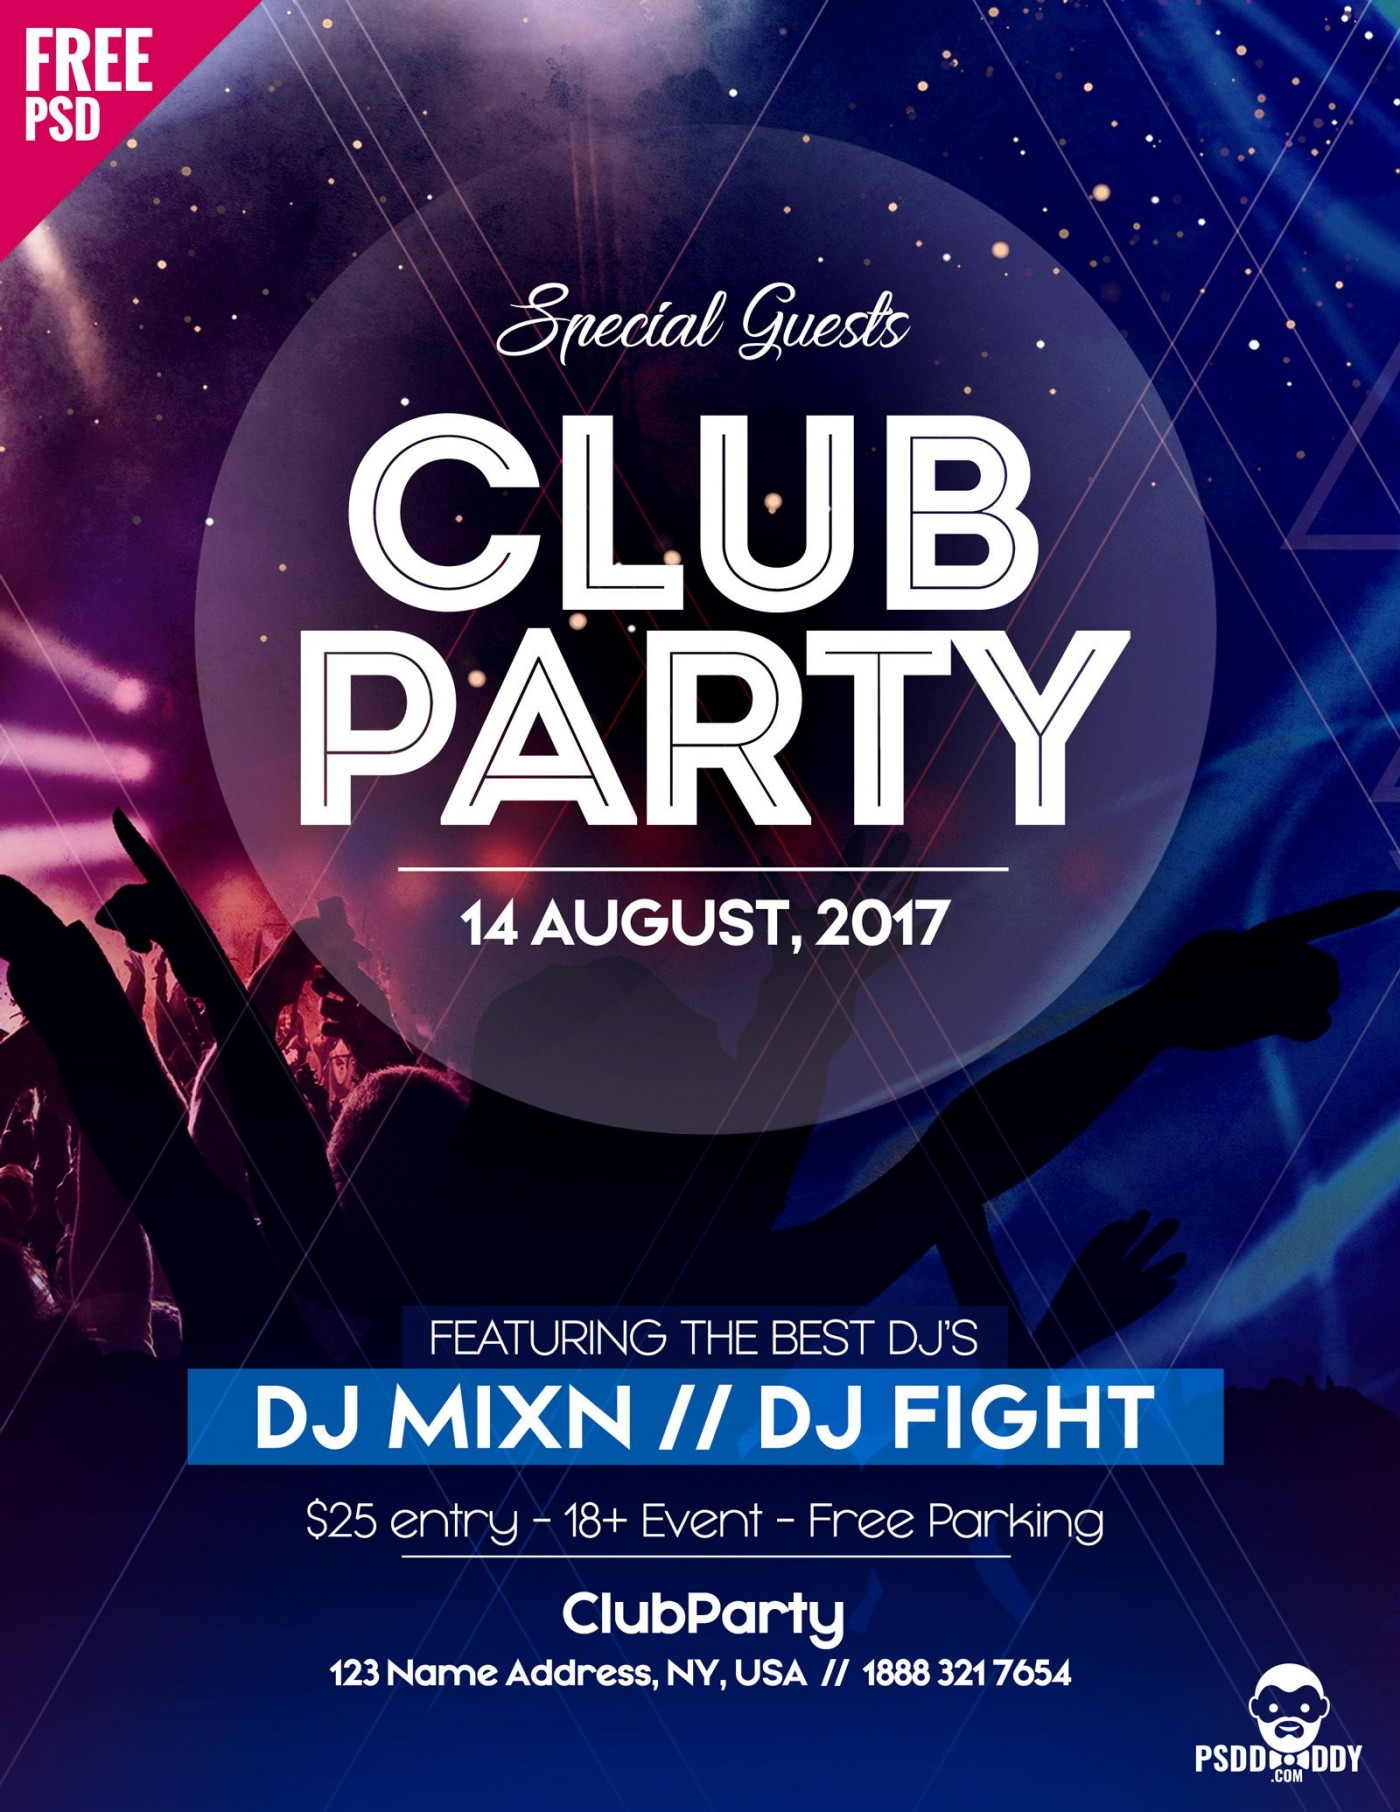 004 Rare Party Event Flyer Template Free Download Picture 1400